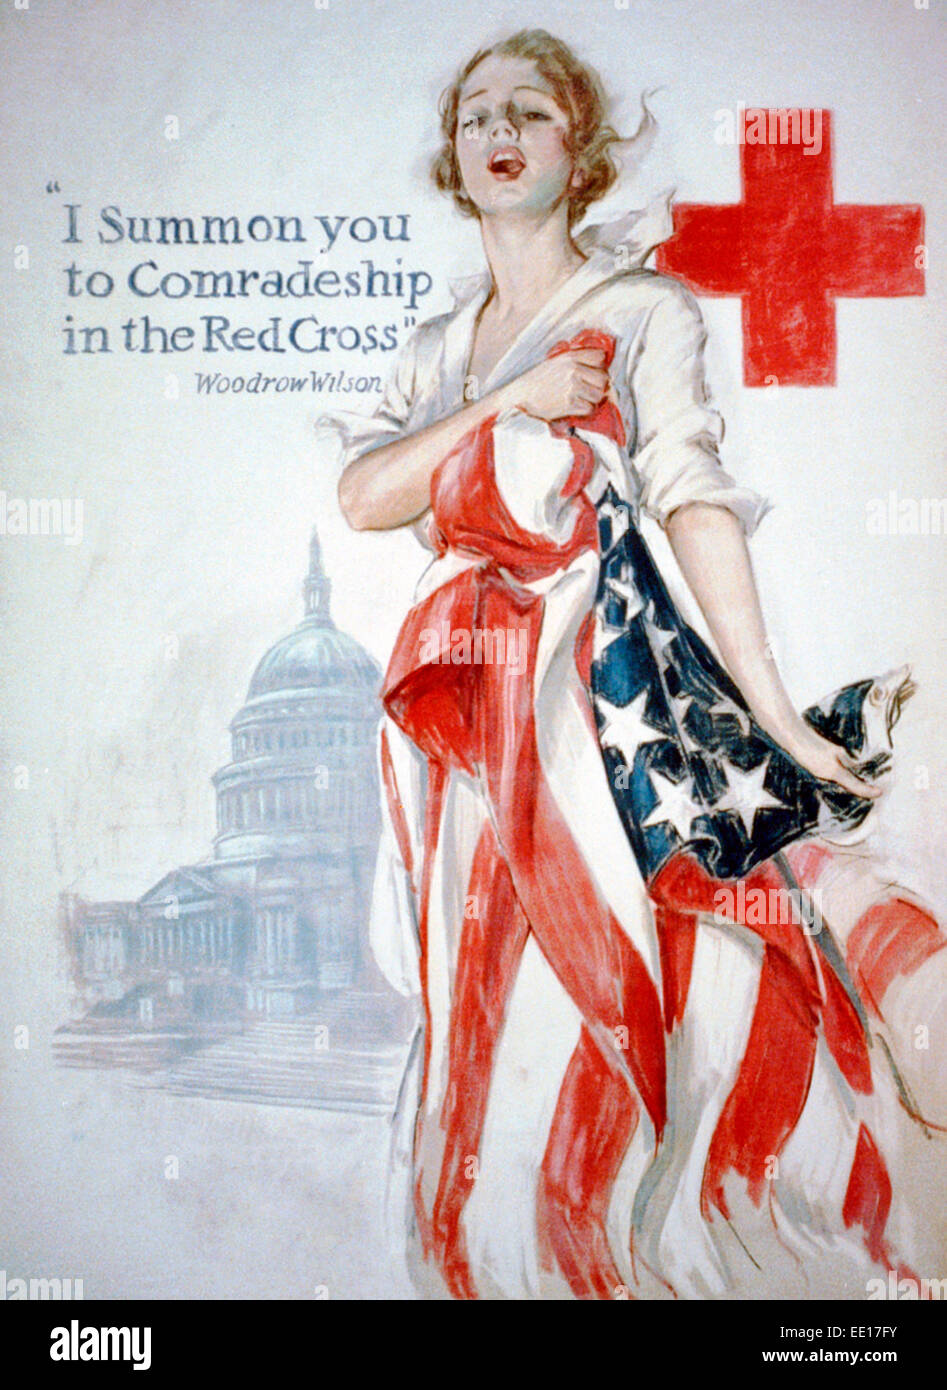 'I summon you to comradeship in the Red Cross' - Woodrow Wilson. World War I Poster showing a young woman - Stock Image